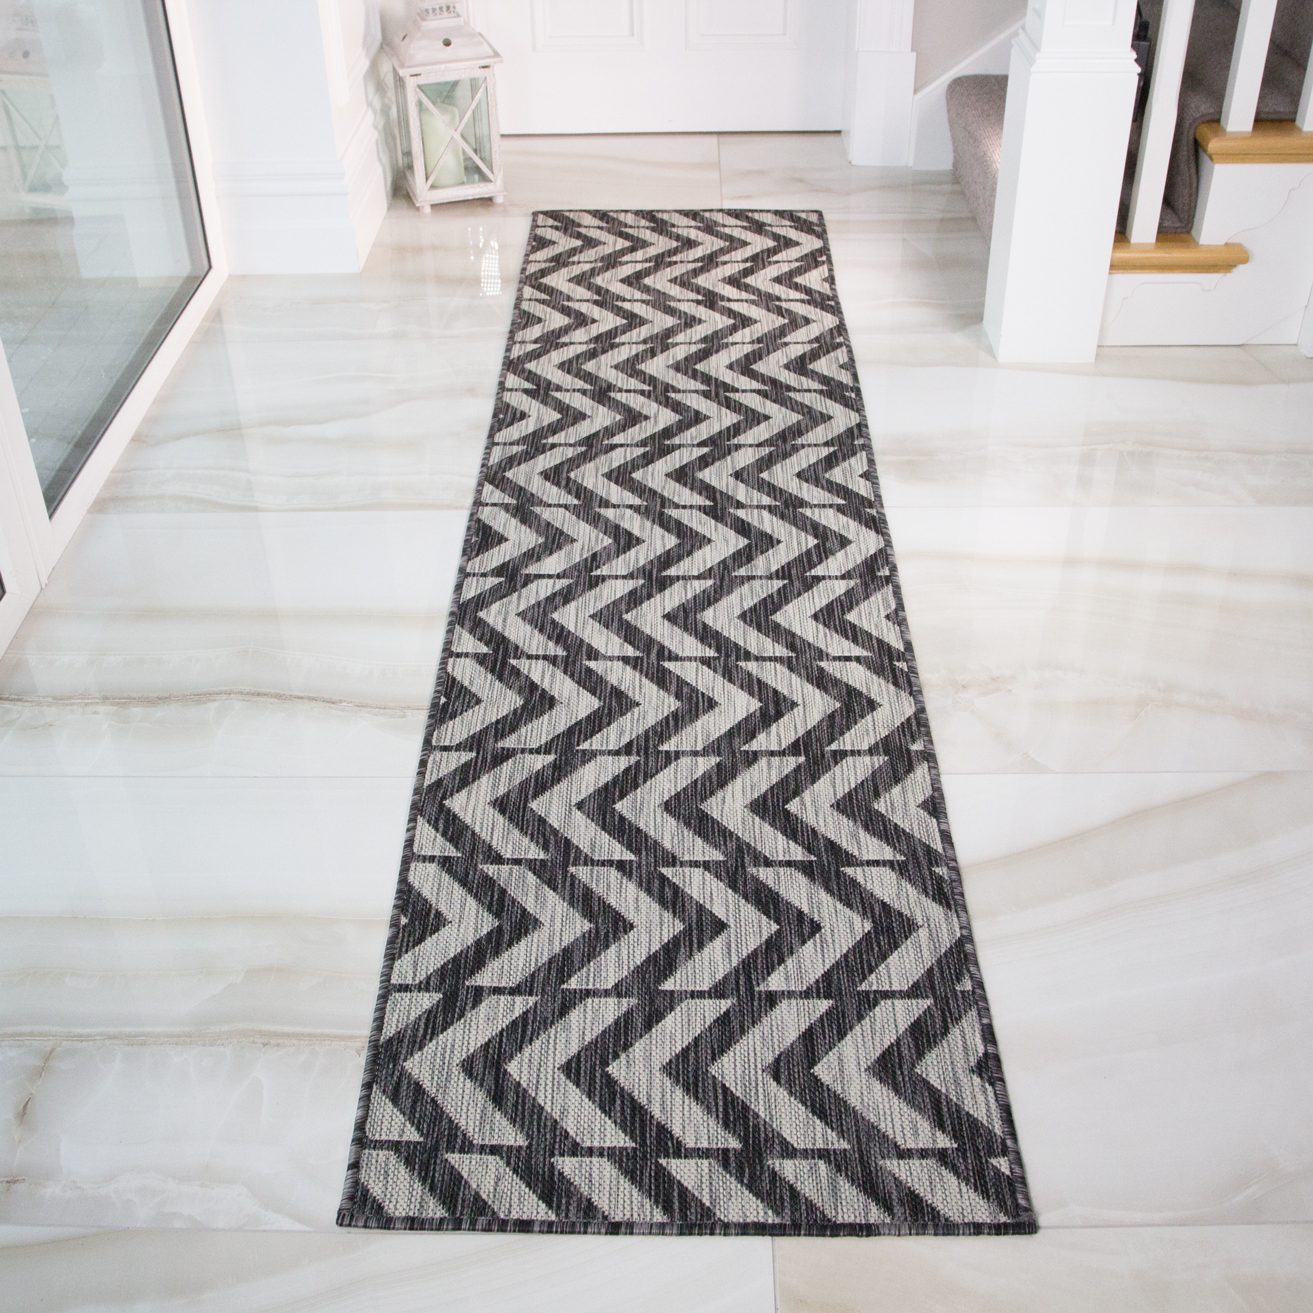 Charcoal Geometric Outdoor Runner Rug- Habitat